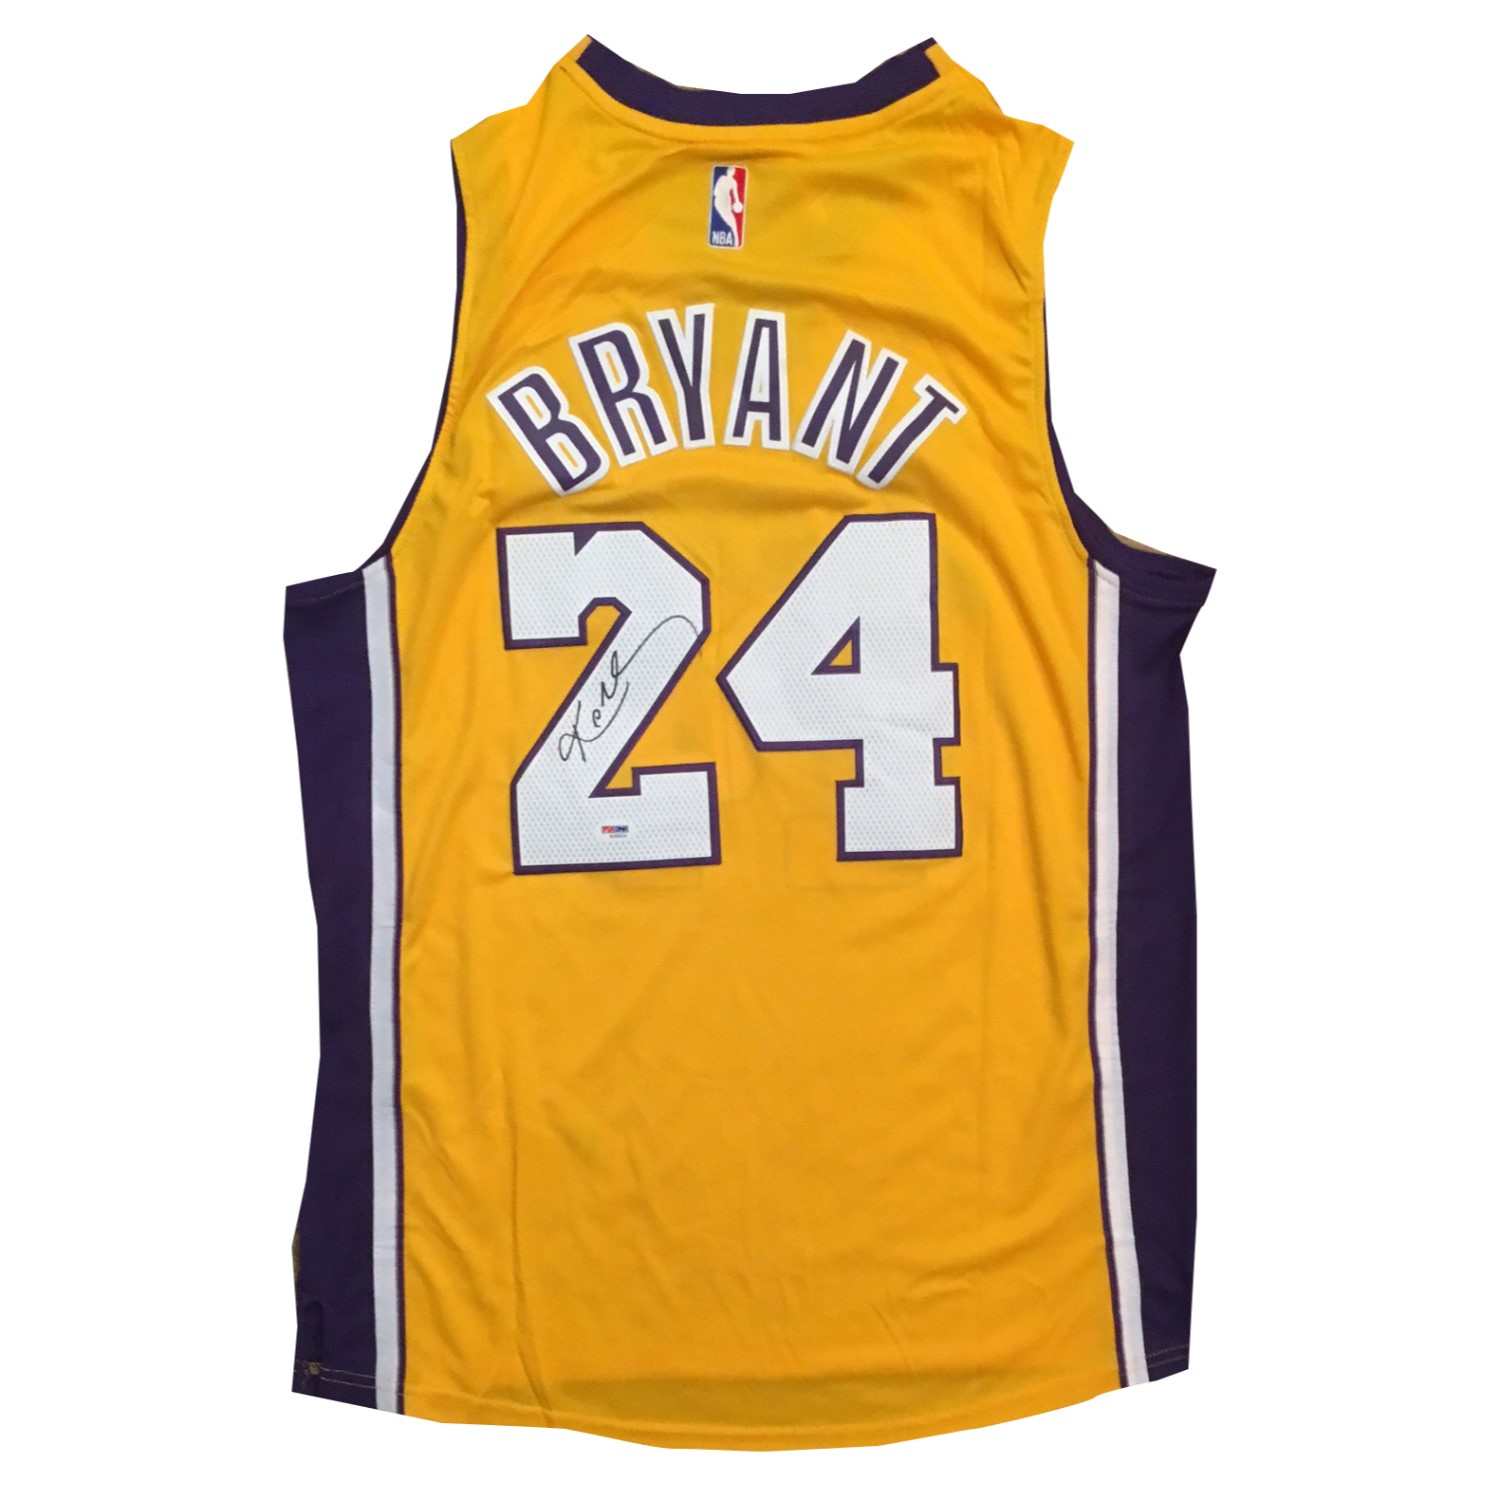 sale retailer aee8b d9861 24 lakers jersey